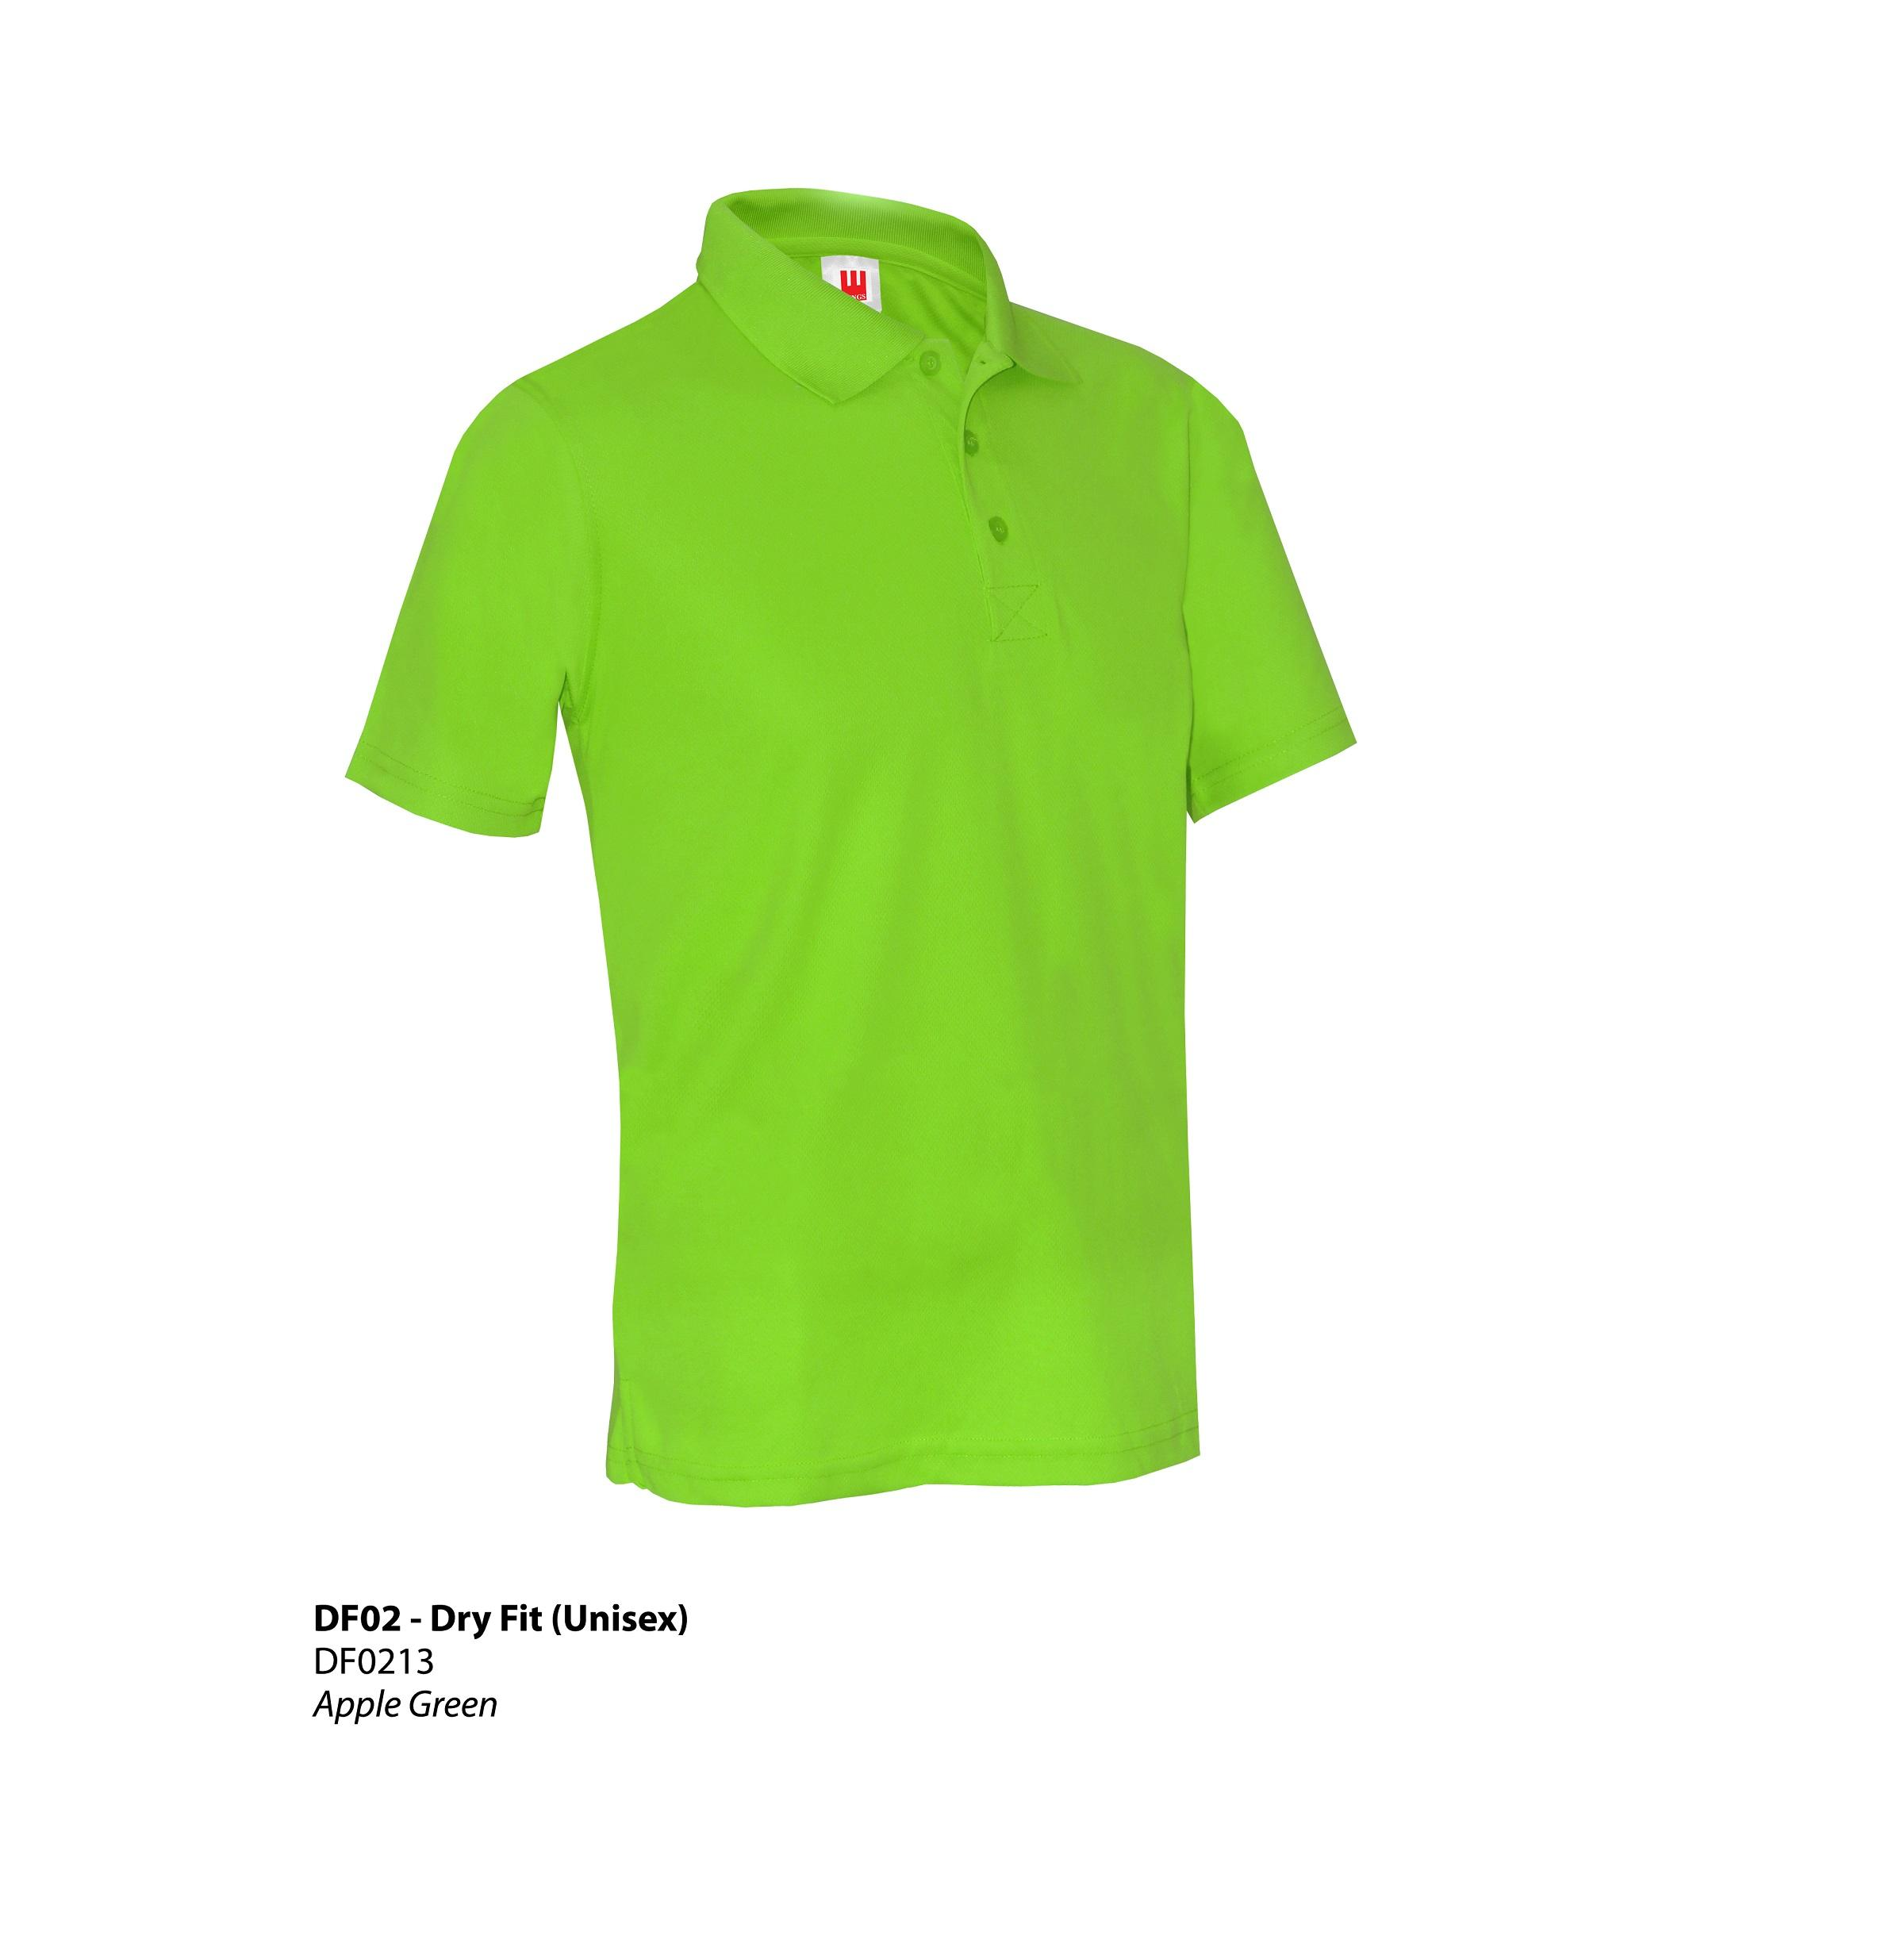 Dry fit collar tee df02 plain 8 colors unisex t for Apple shirt screen printing